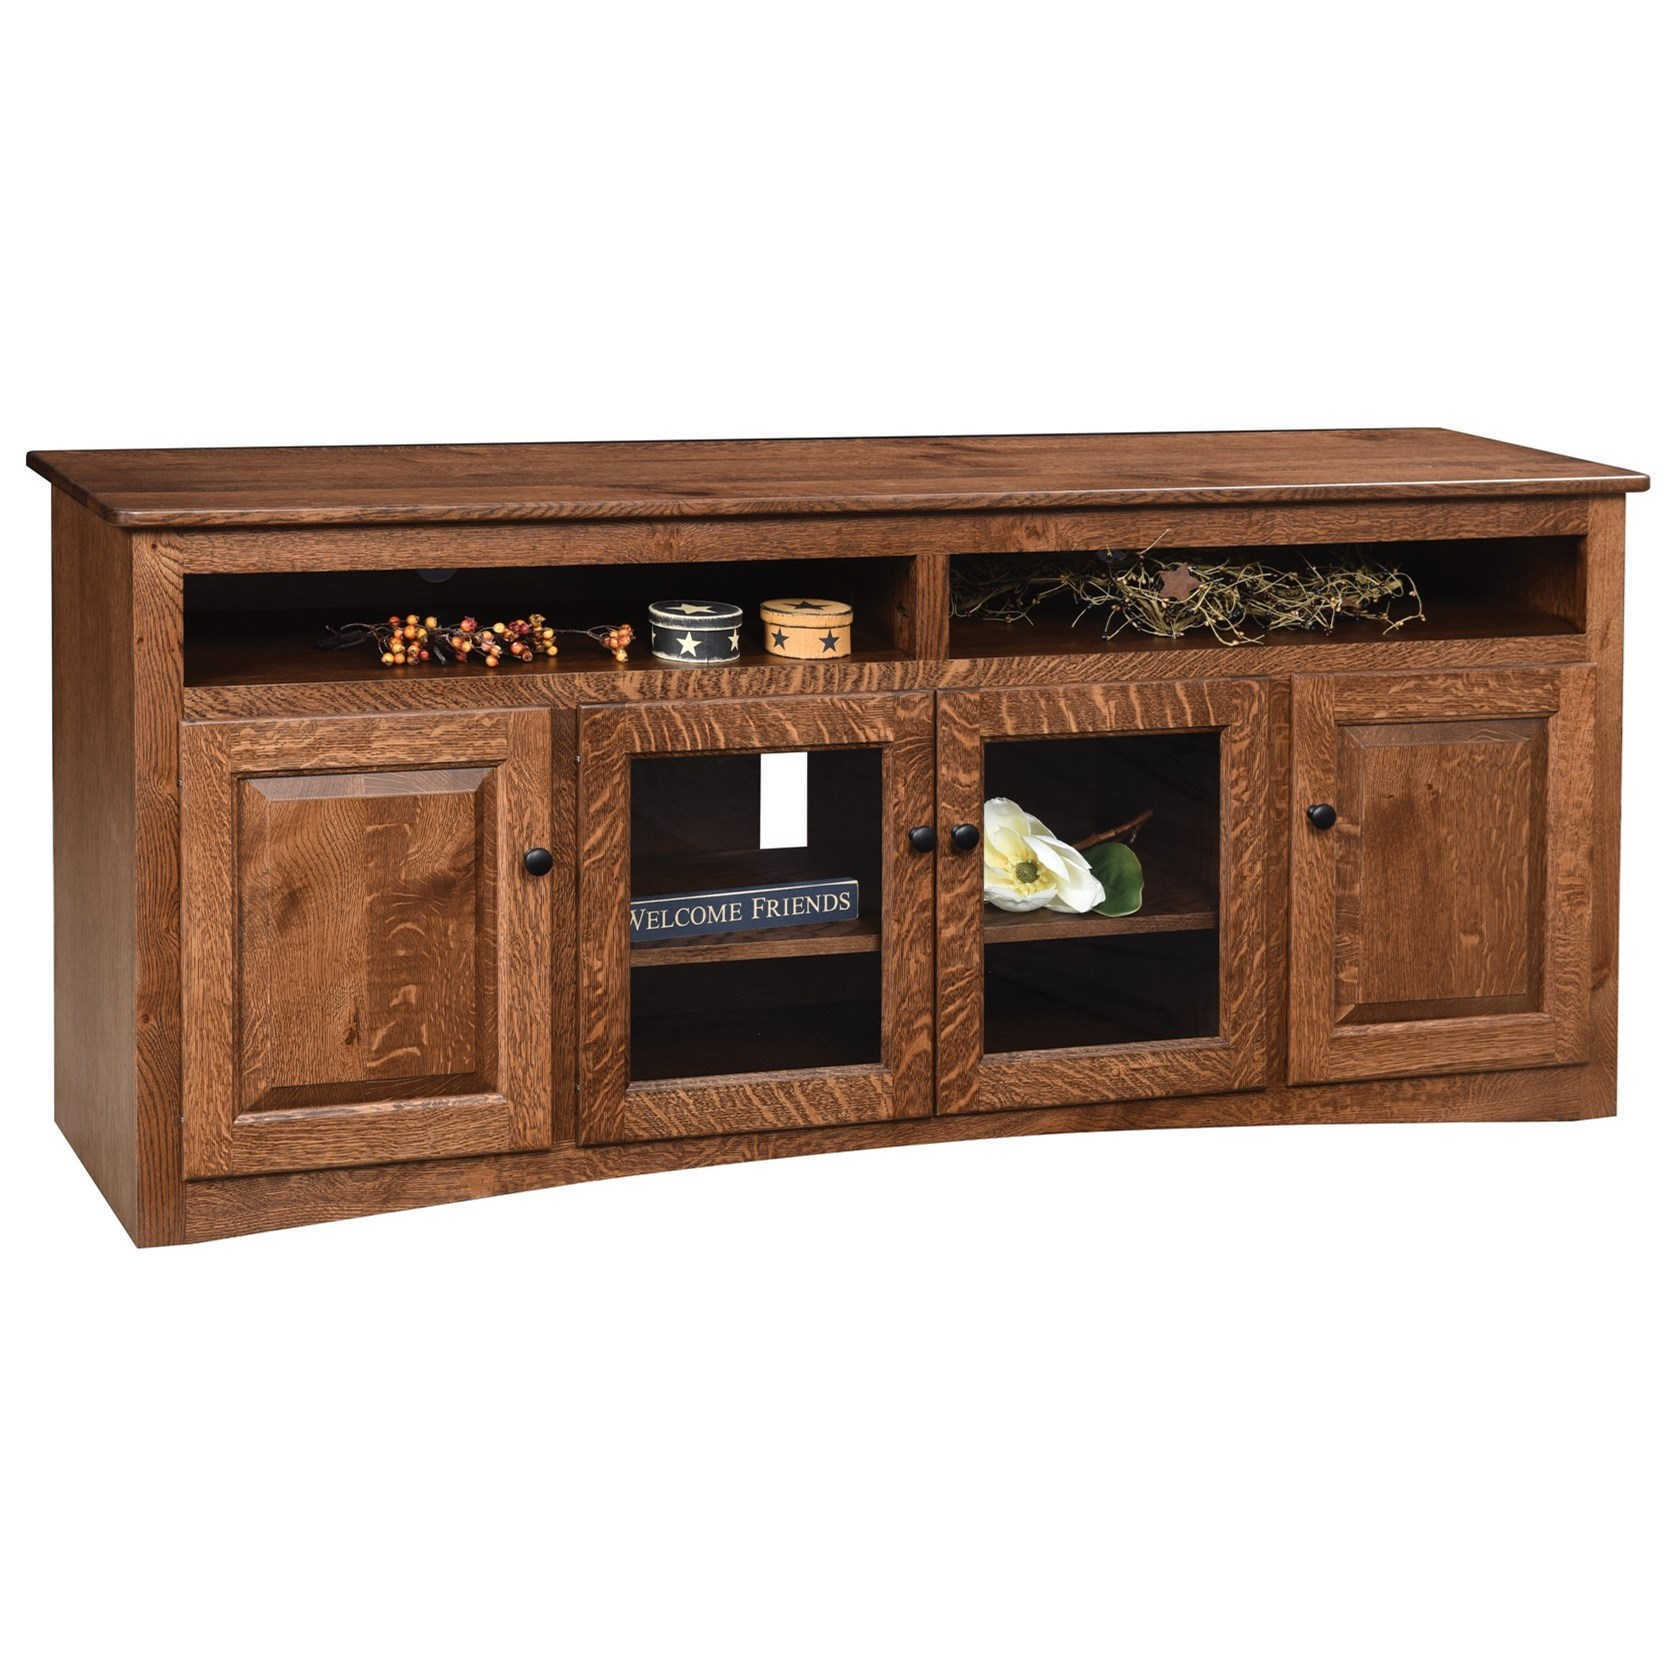 "Economy 70"" Customizable TV Stand by Ashery Oak at Saugerties Furniture Mart"